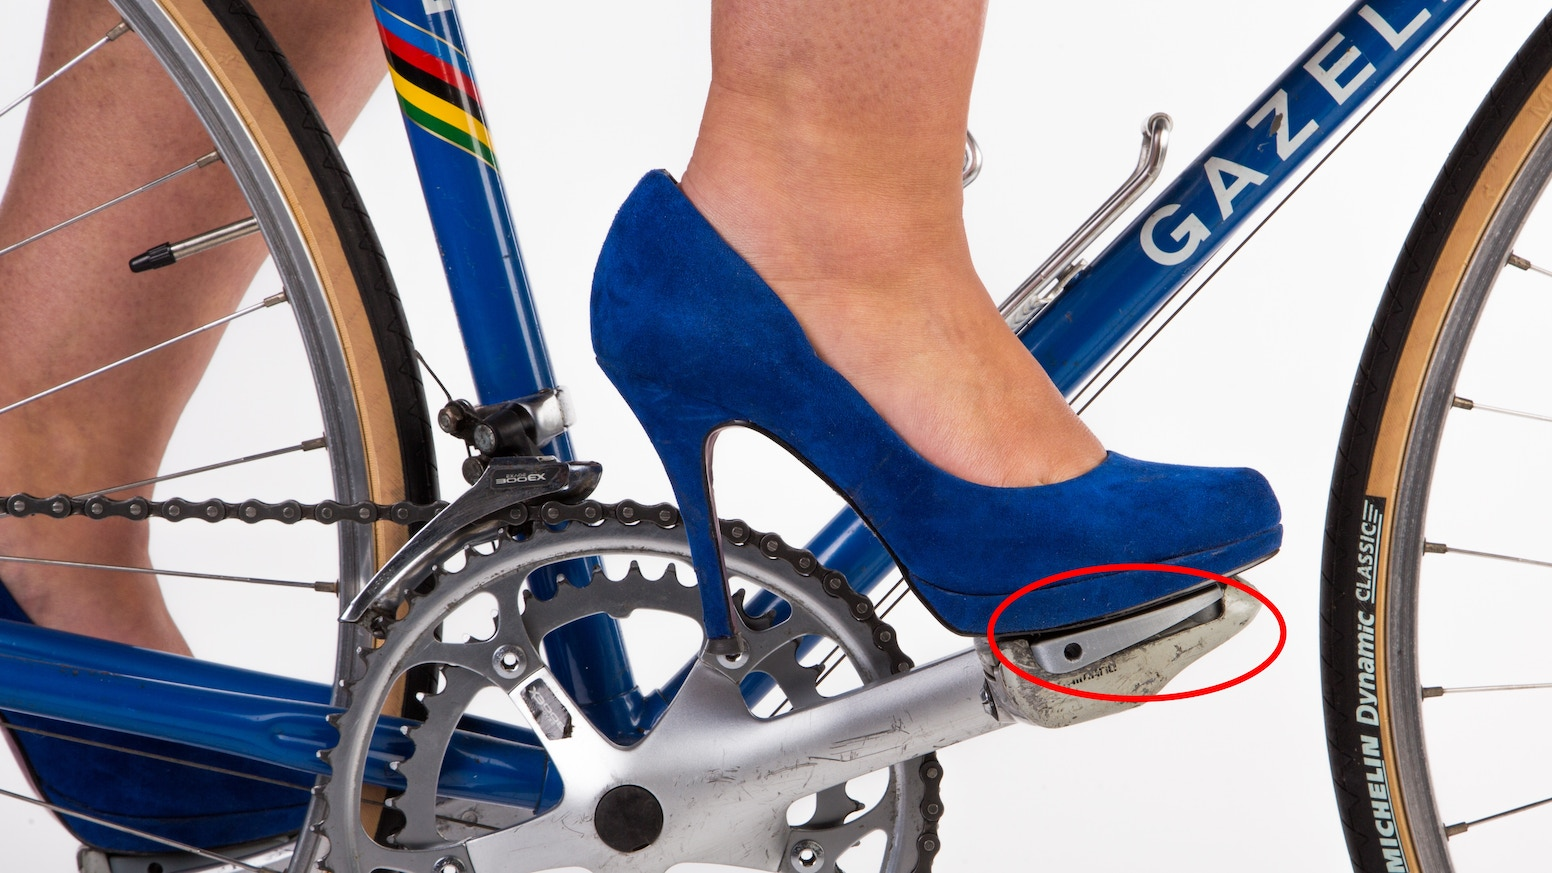 d18688a8d70 Pedal Plate  Get more out of your road bike! by Marc van der Heide ...